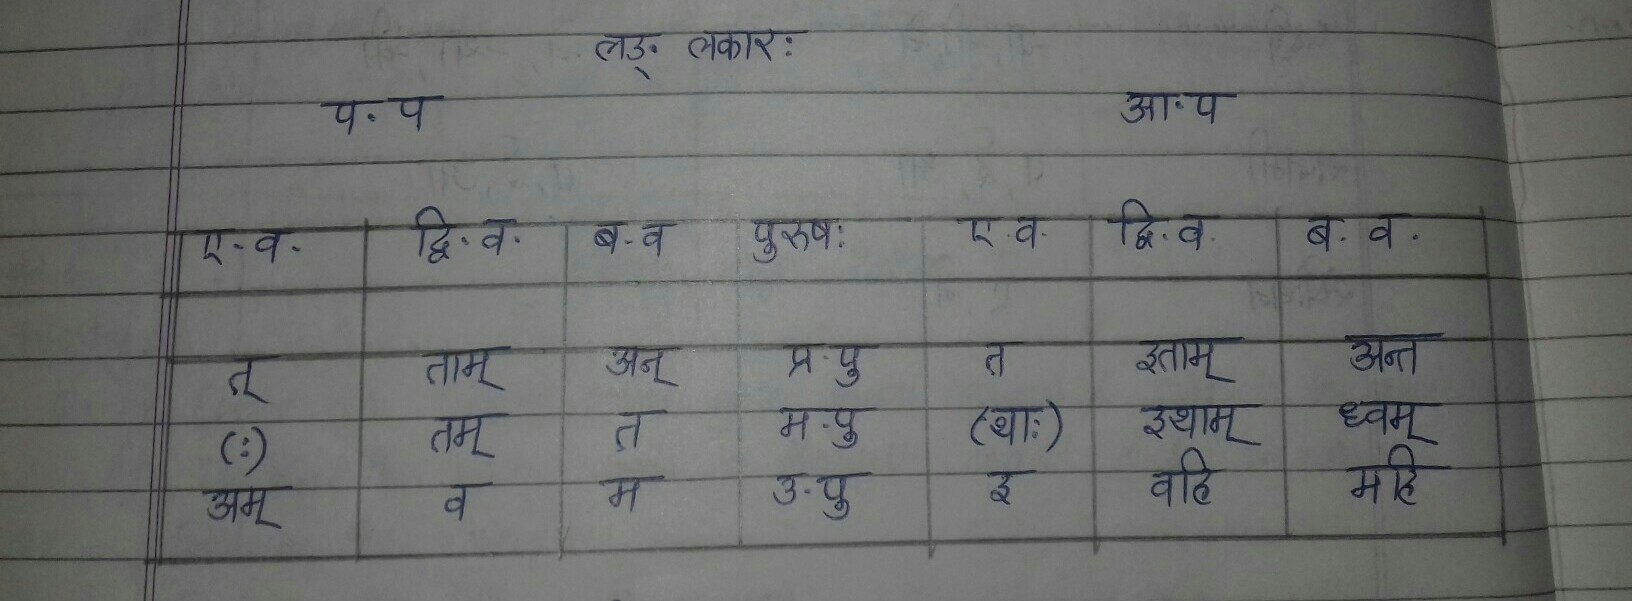 Sanskrit past tense table - Brainly in